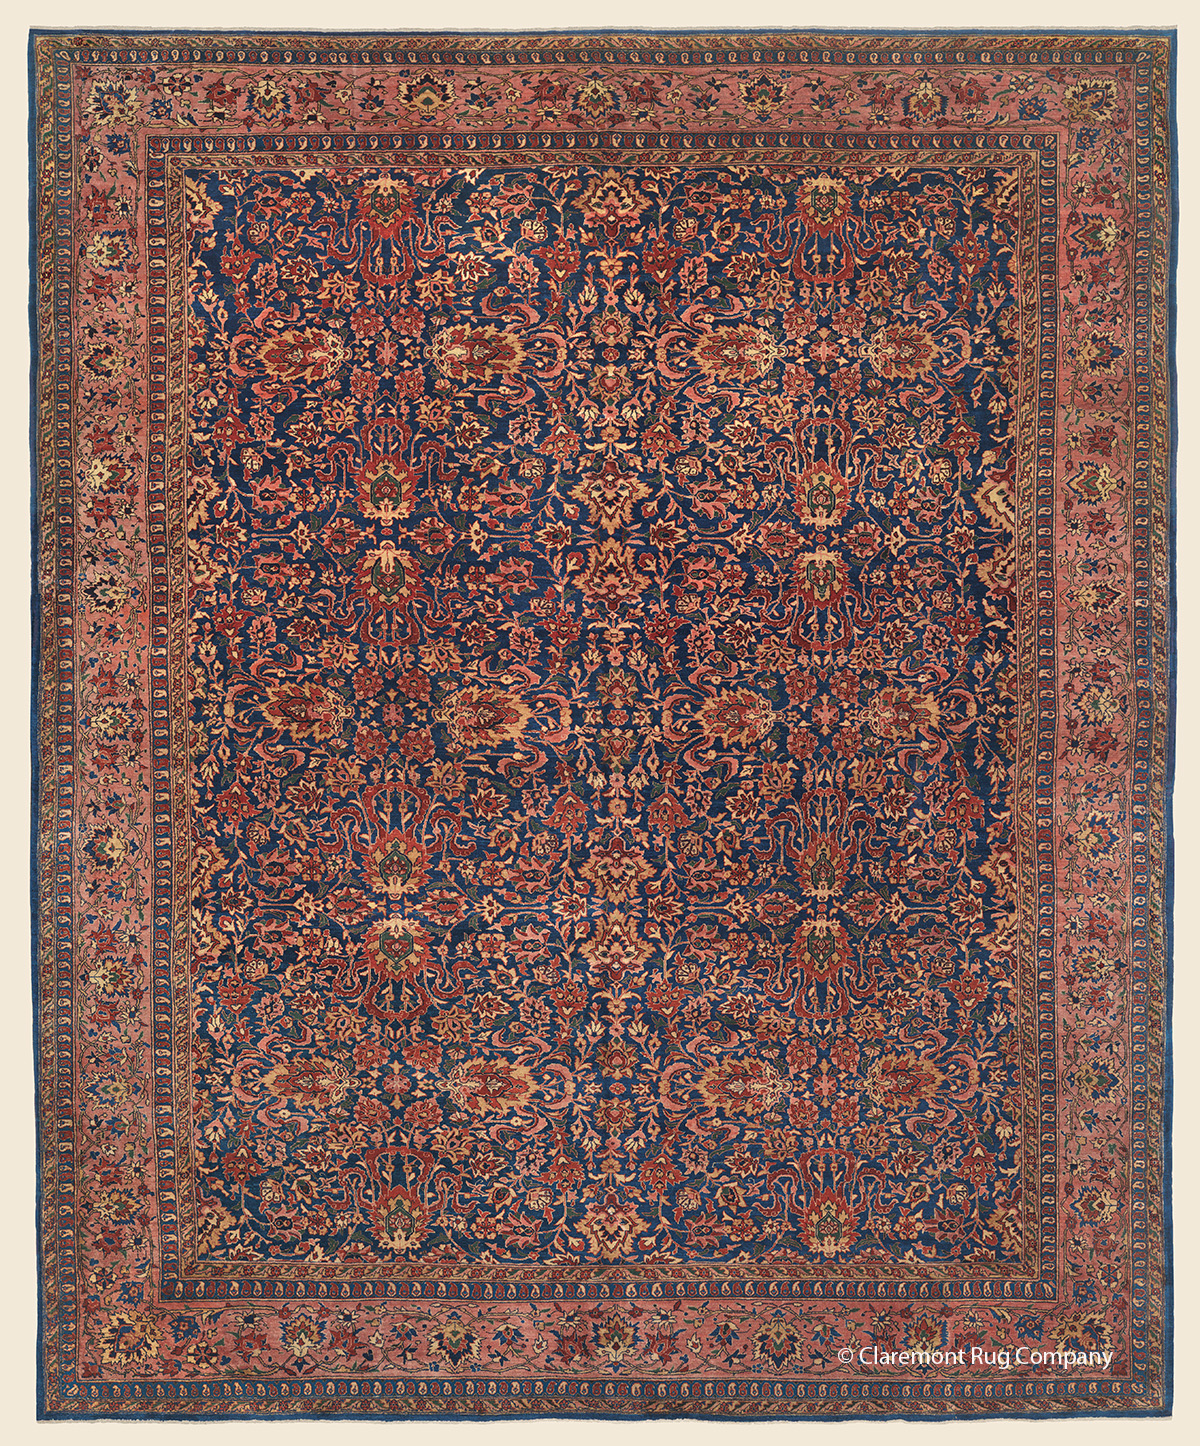 19th Century Ferahan Sarouk Carpet in hues of cobalt, rose, carnelian and gold